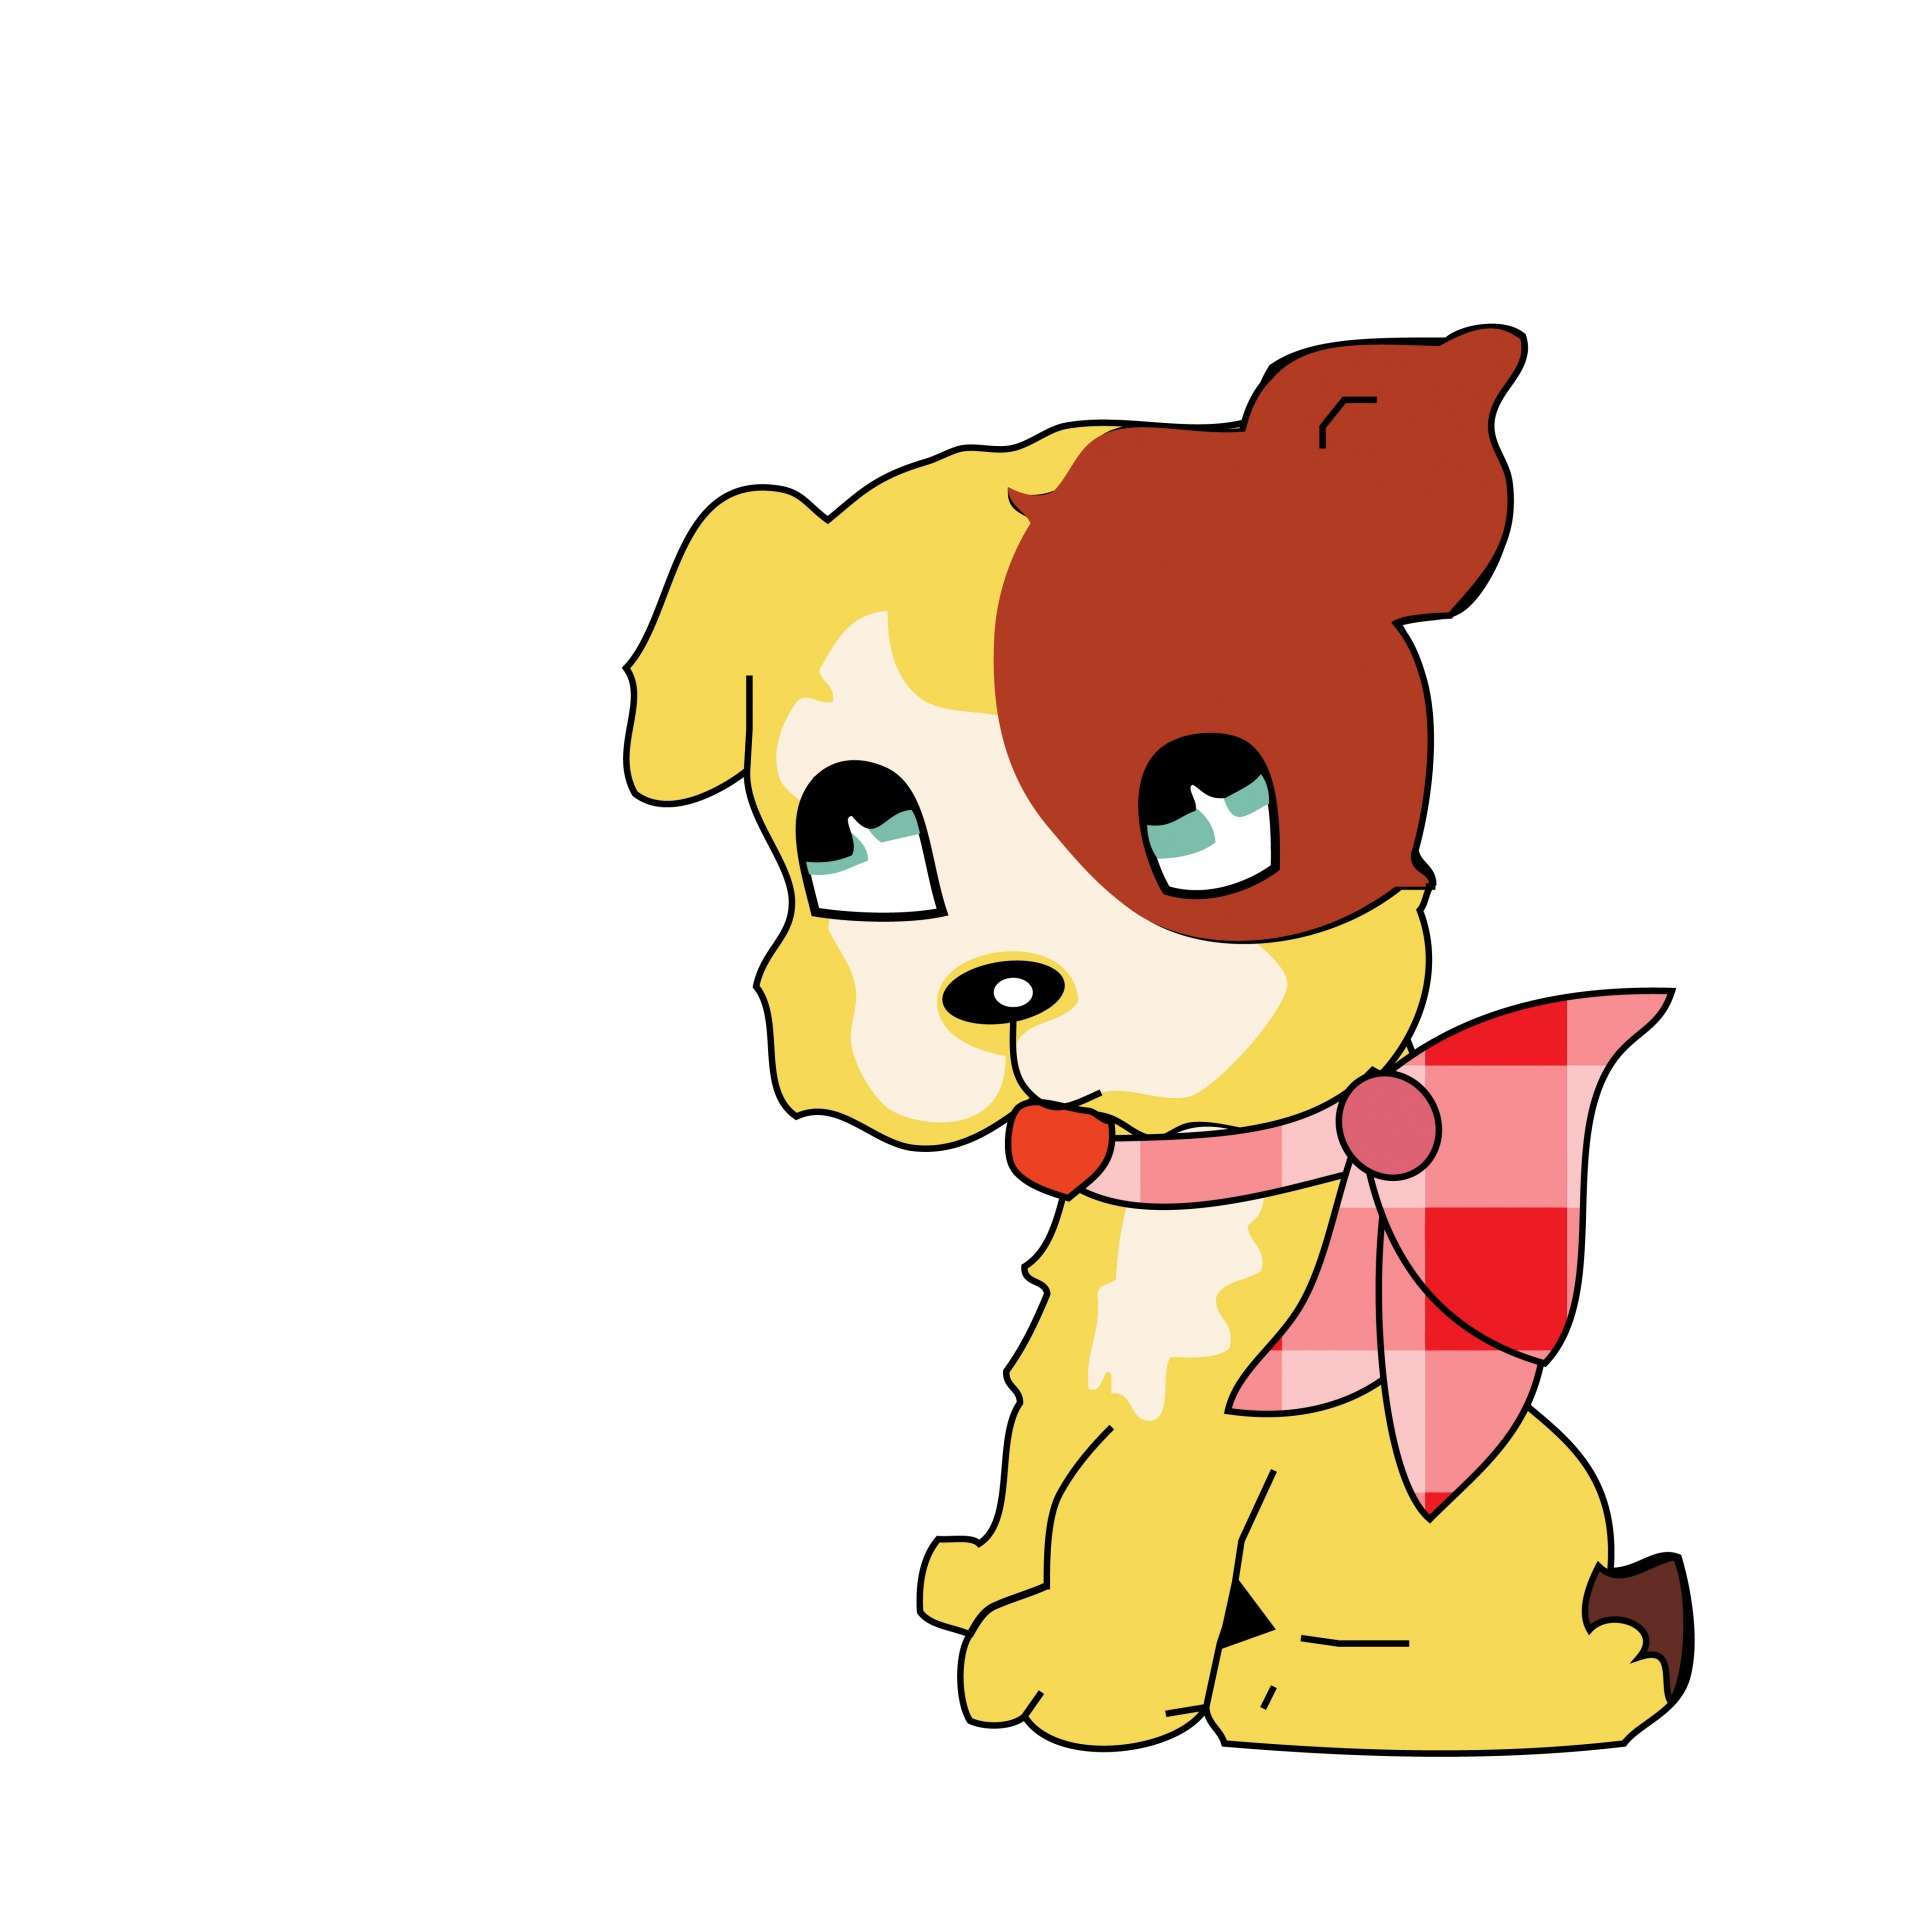 Dog Puppy Cute Clipart Whimsy Free Image From Needpix Com